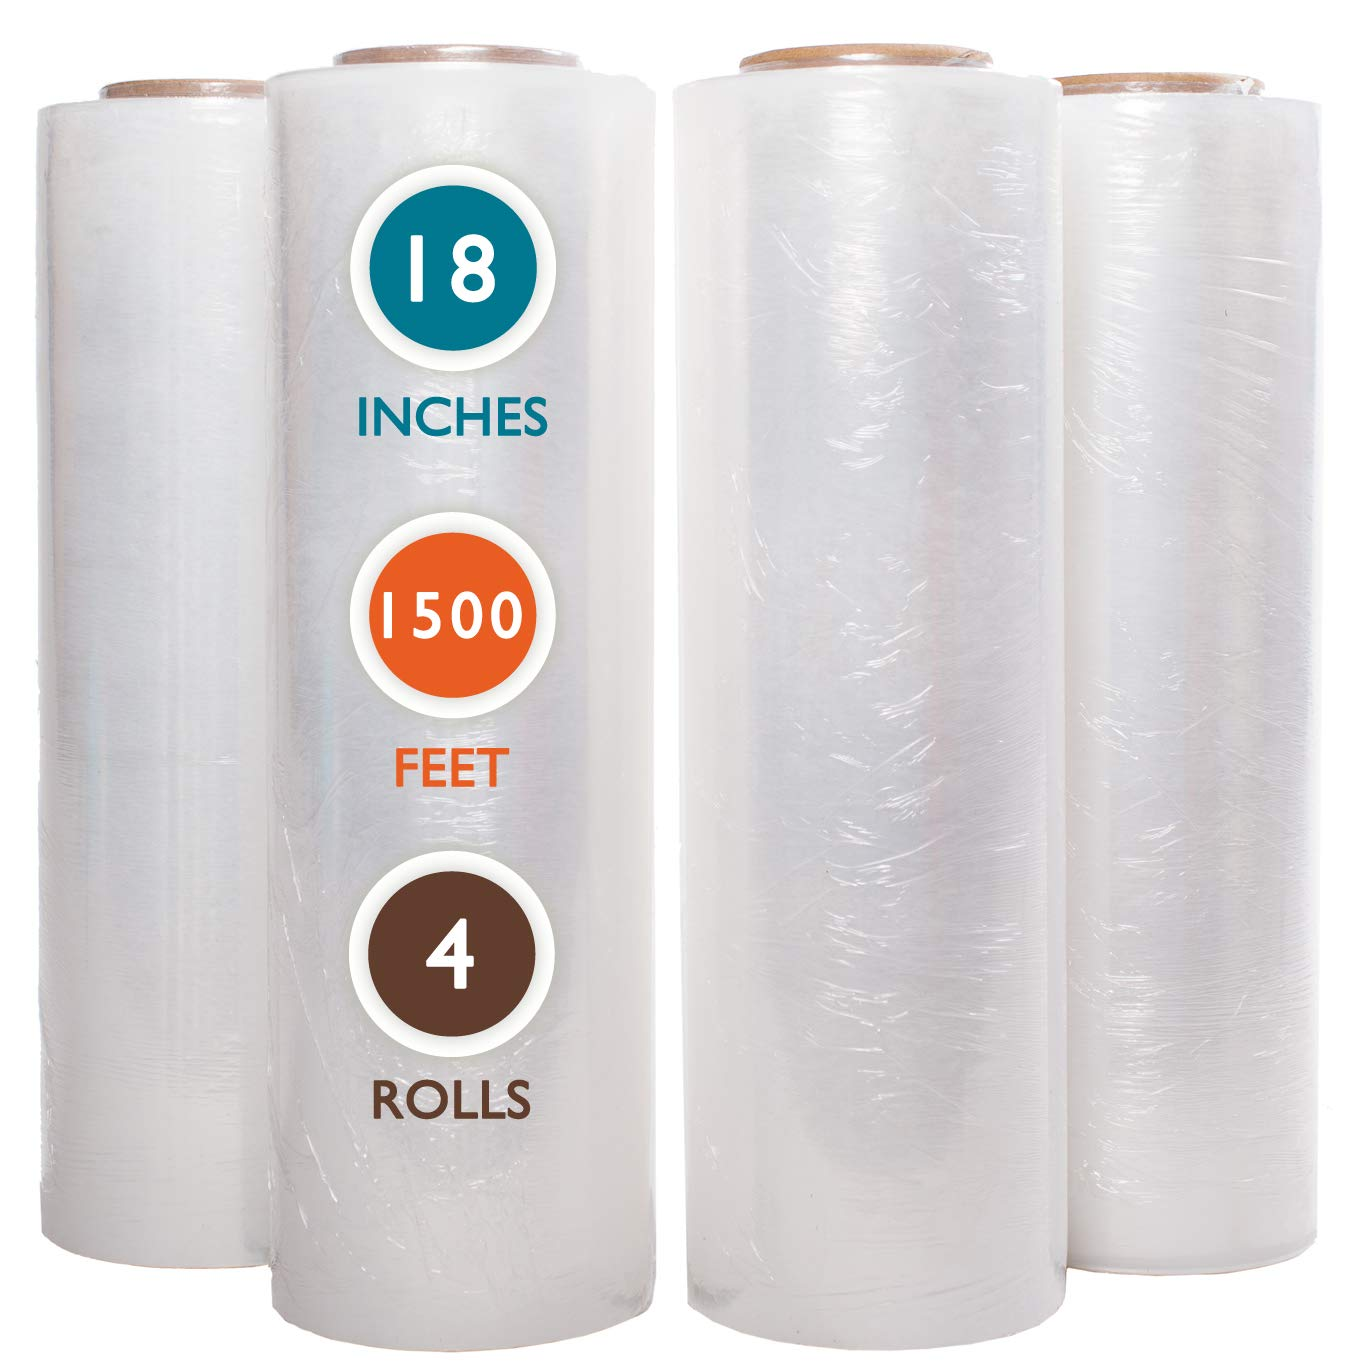 4 Rolls 18'' x 1500 Ft Stretch Wrap Heavy Duty, Industrial Strength Shrink Wrap, 55 Gauge High Performance Stretch Film Replaces 80 Gauge Low Films, Clear Hand Stretch Wrap by PackageZoom